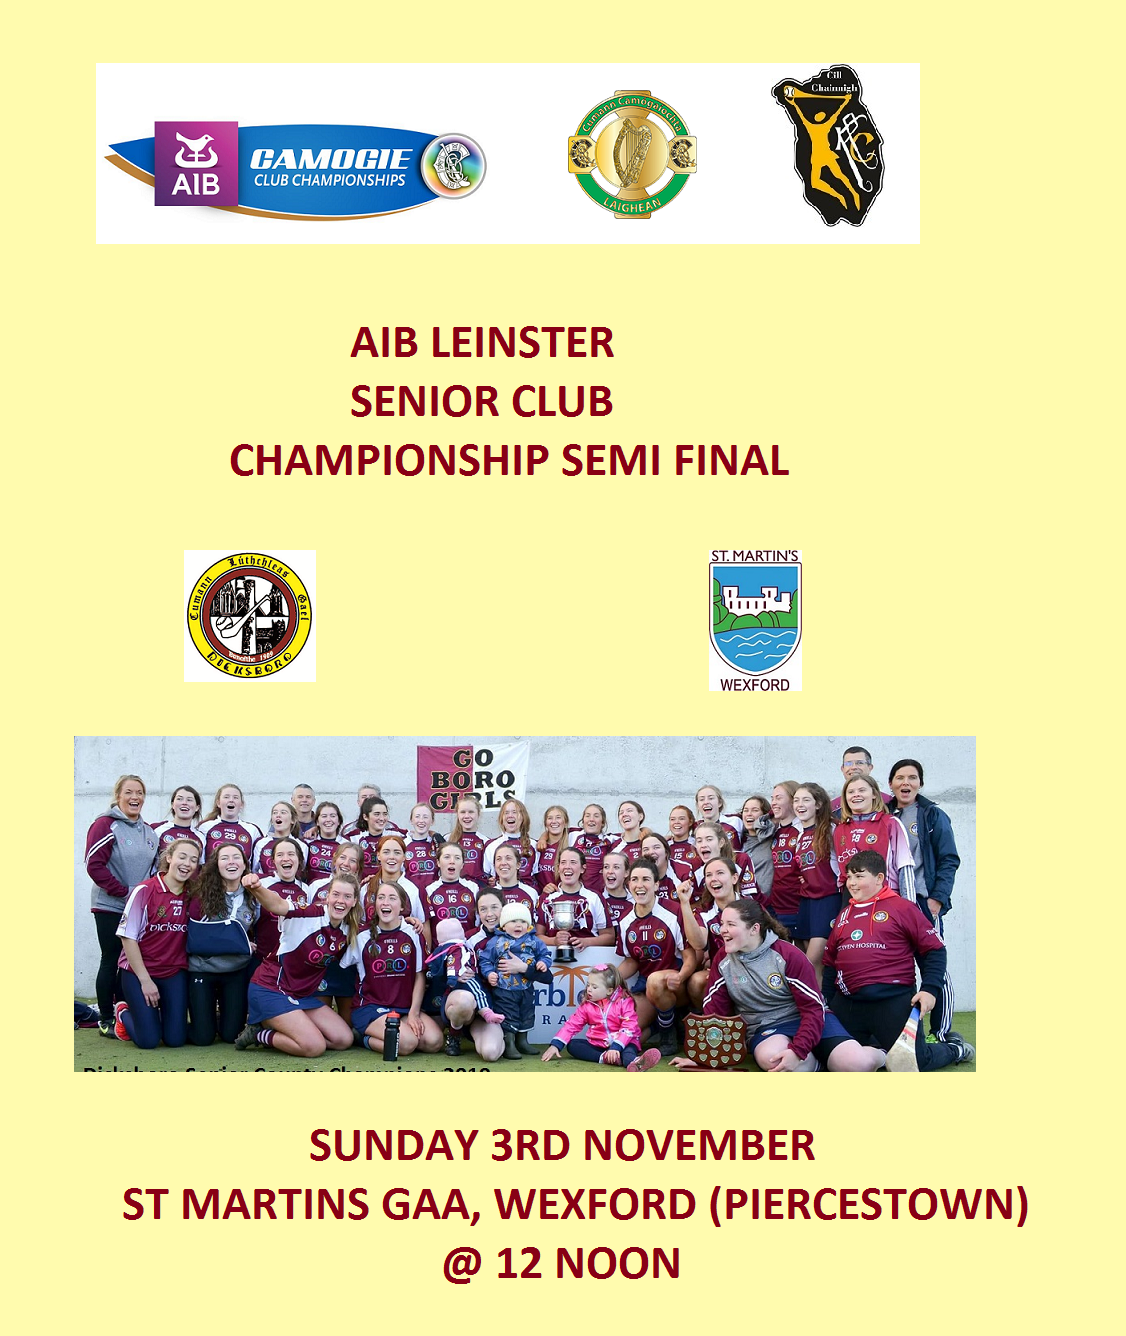 Dicksboro promotion for Leinster Senior Club Semi Final 031119